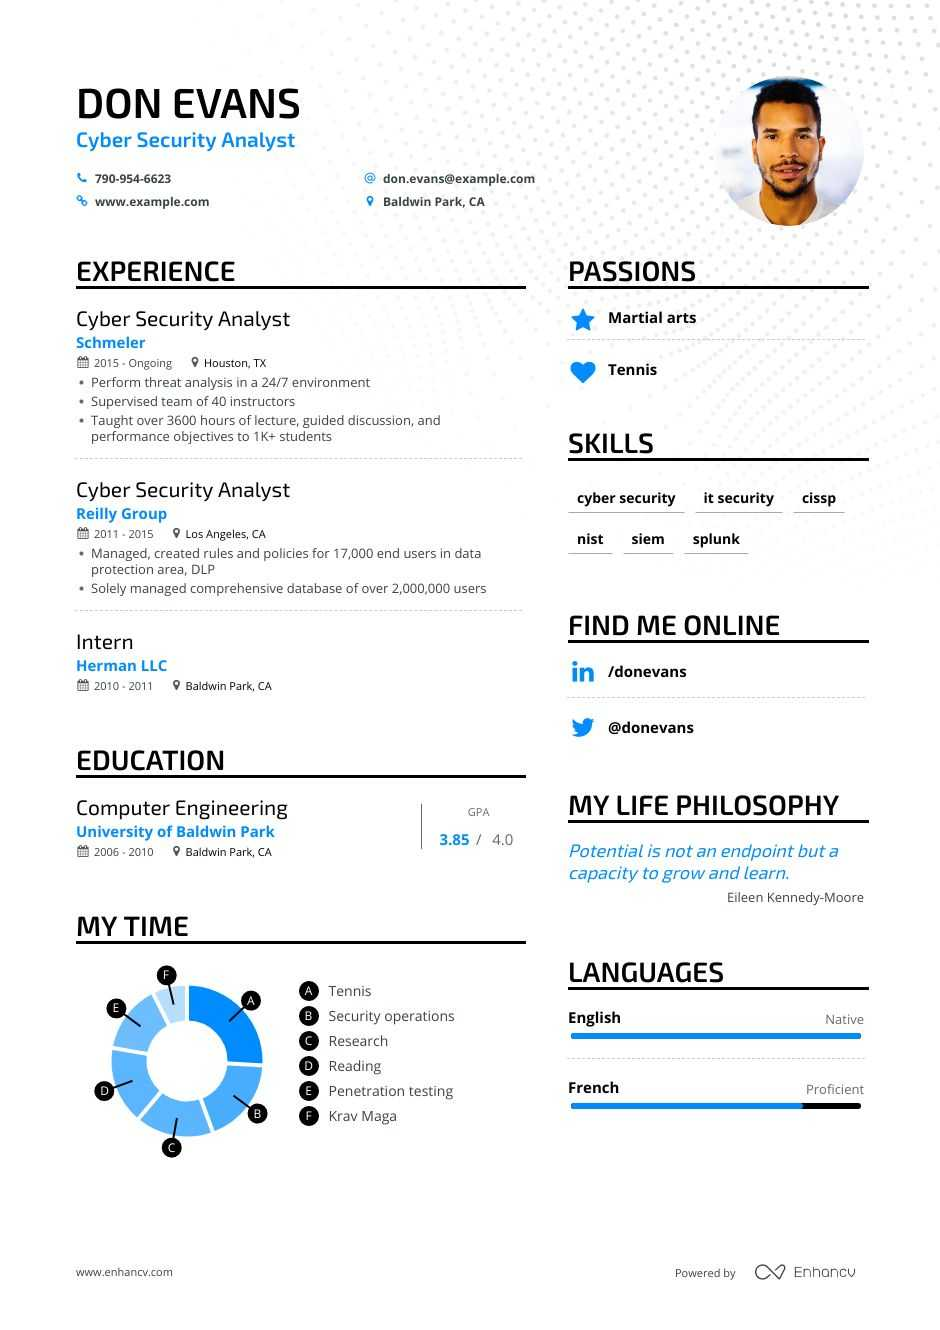 cyber security analyst resume examples guide pro tips enhancv cybersecurity sample Resume Cybersecurity Analyst Resume Sample